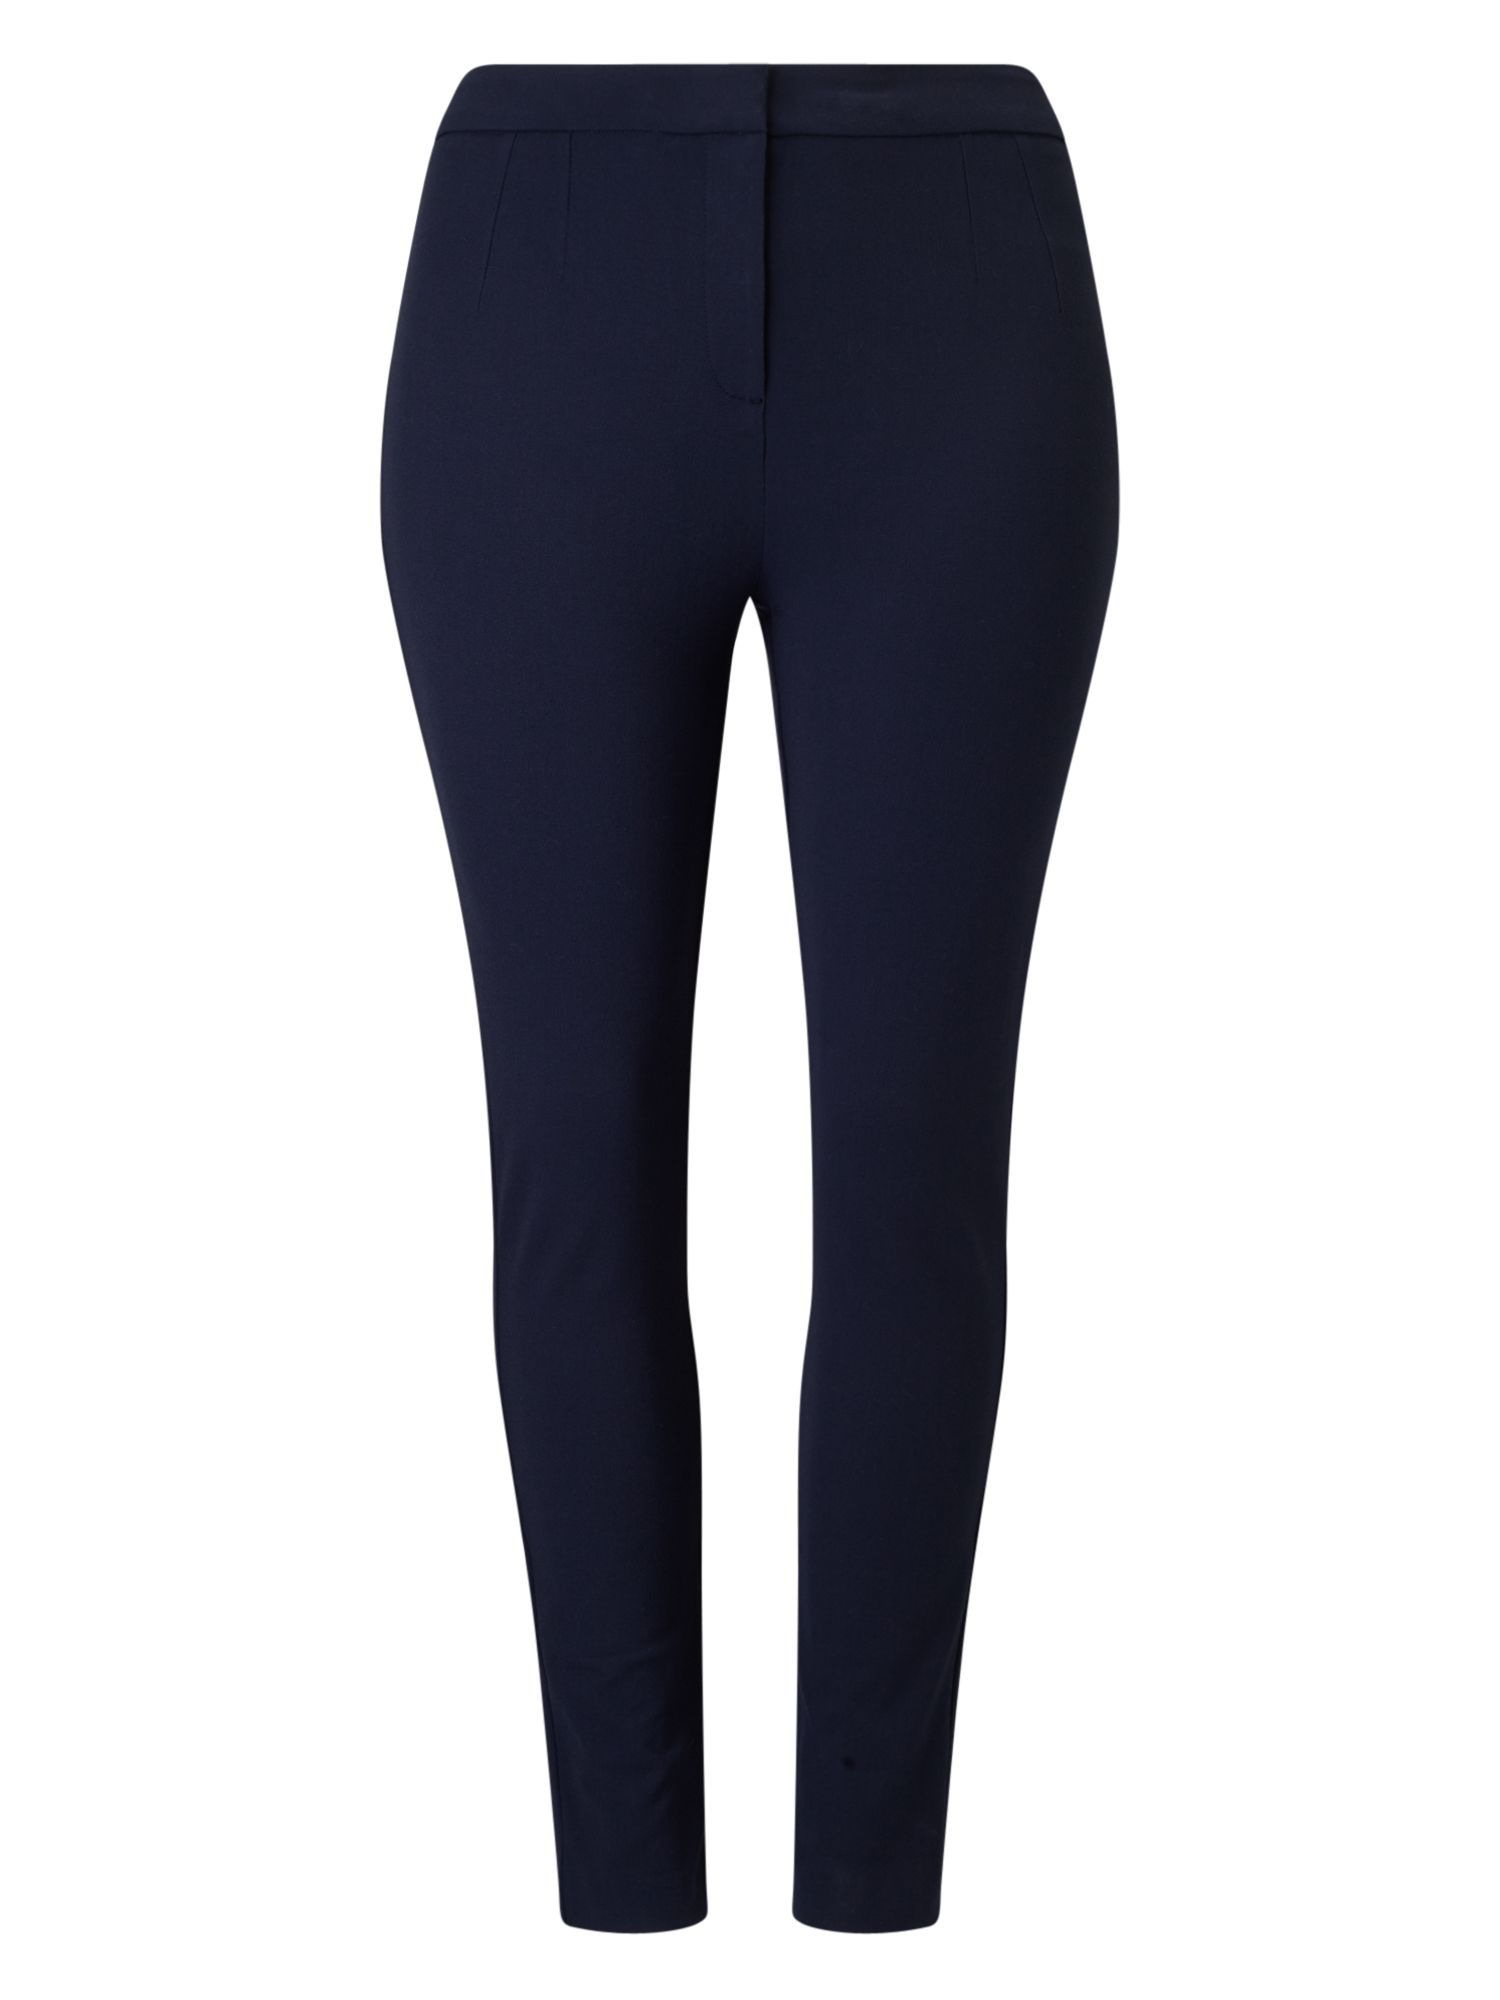 Studio 8 Cressida Trousers, Blue